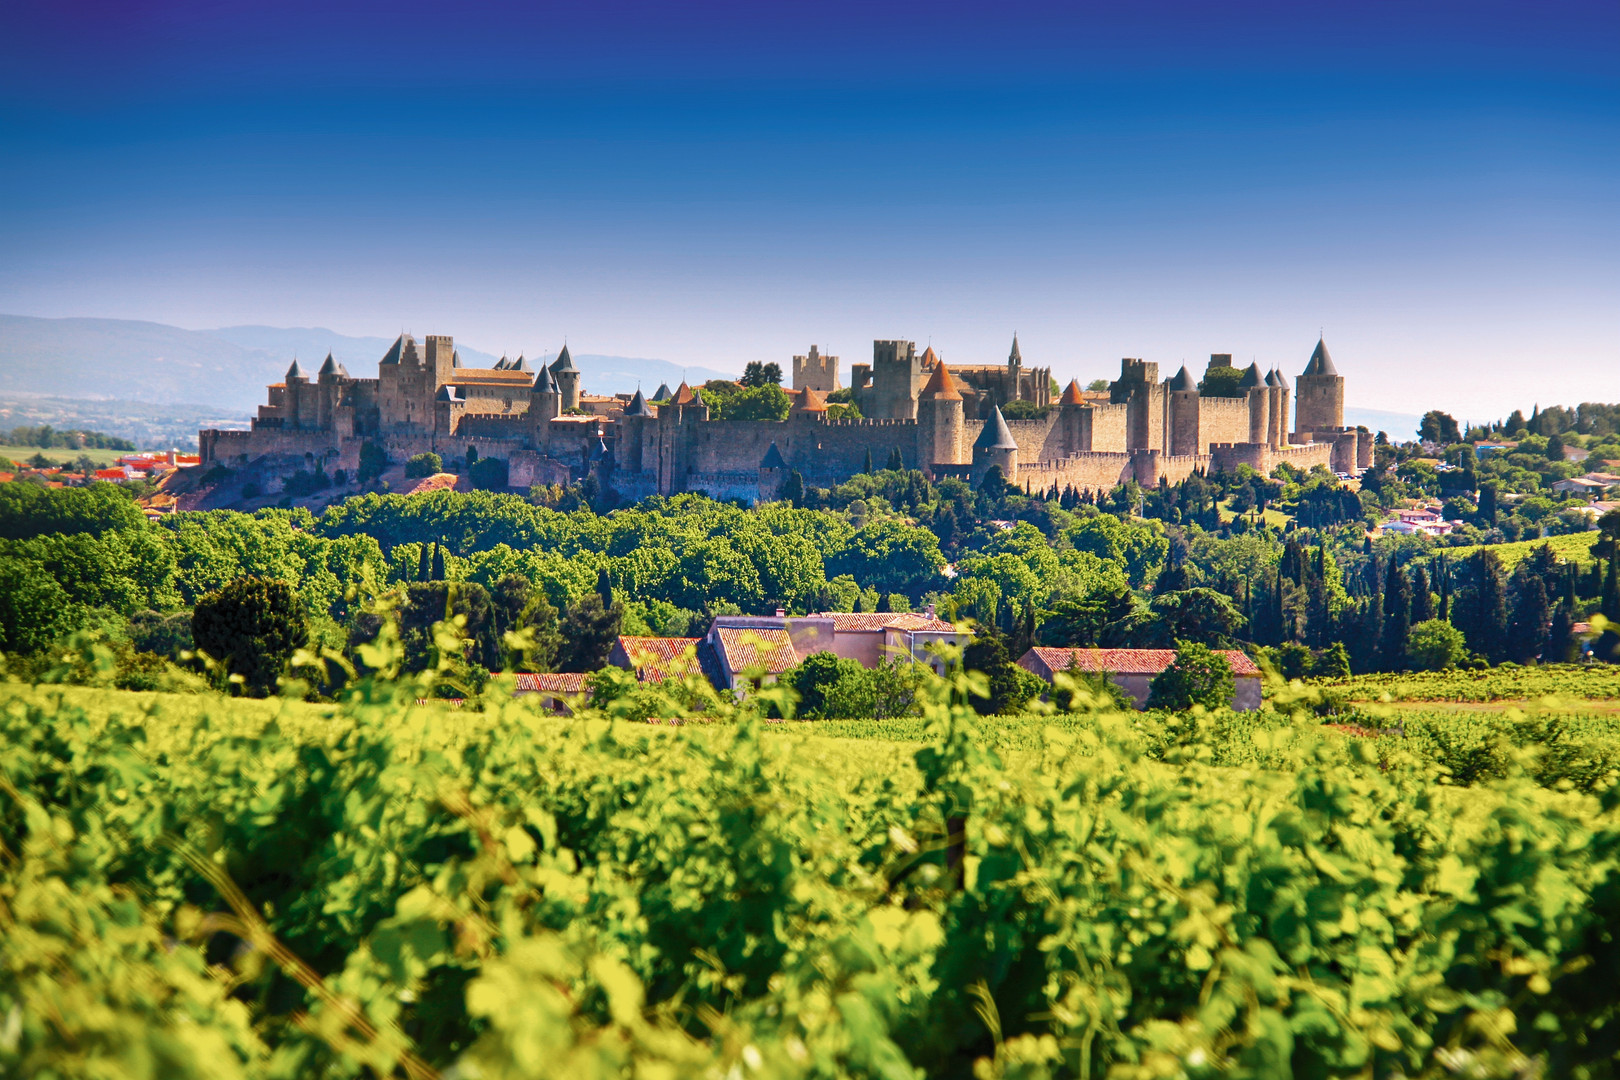 CRTMP_0021173_Carcassonne_C_GDeschamps_C